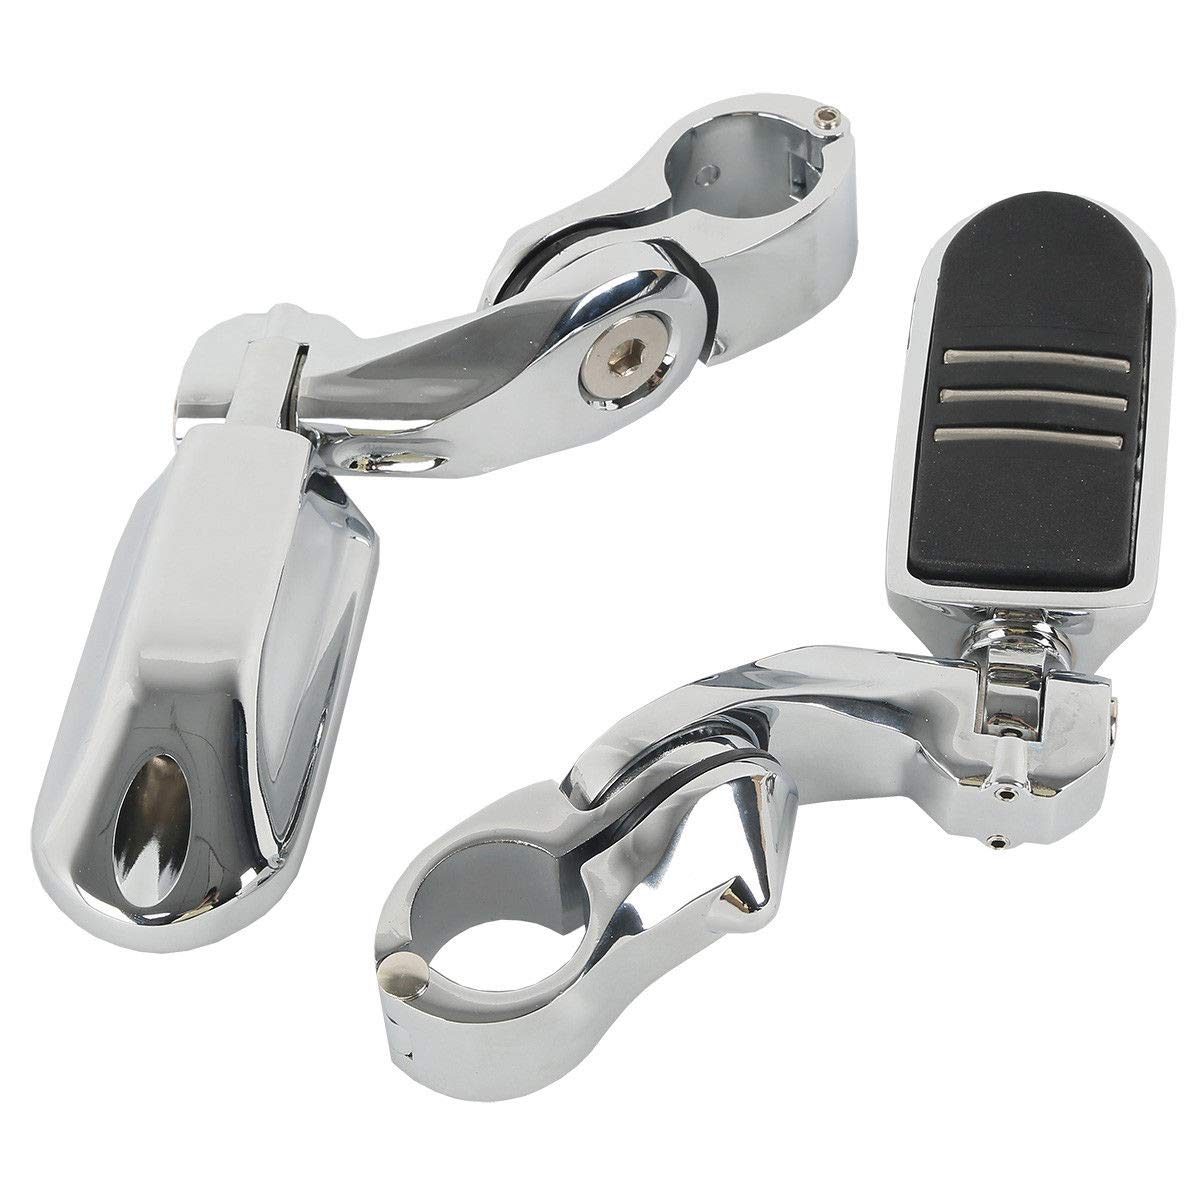 TCMT 32mm 1 1//4 Black Highway Foot Pegs Fits For Electra Road King Street Glide Touring Model Short Angled